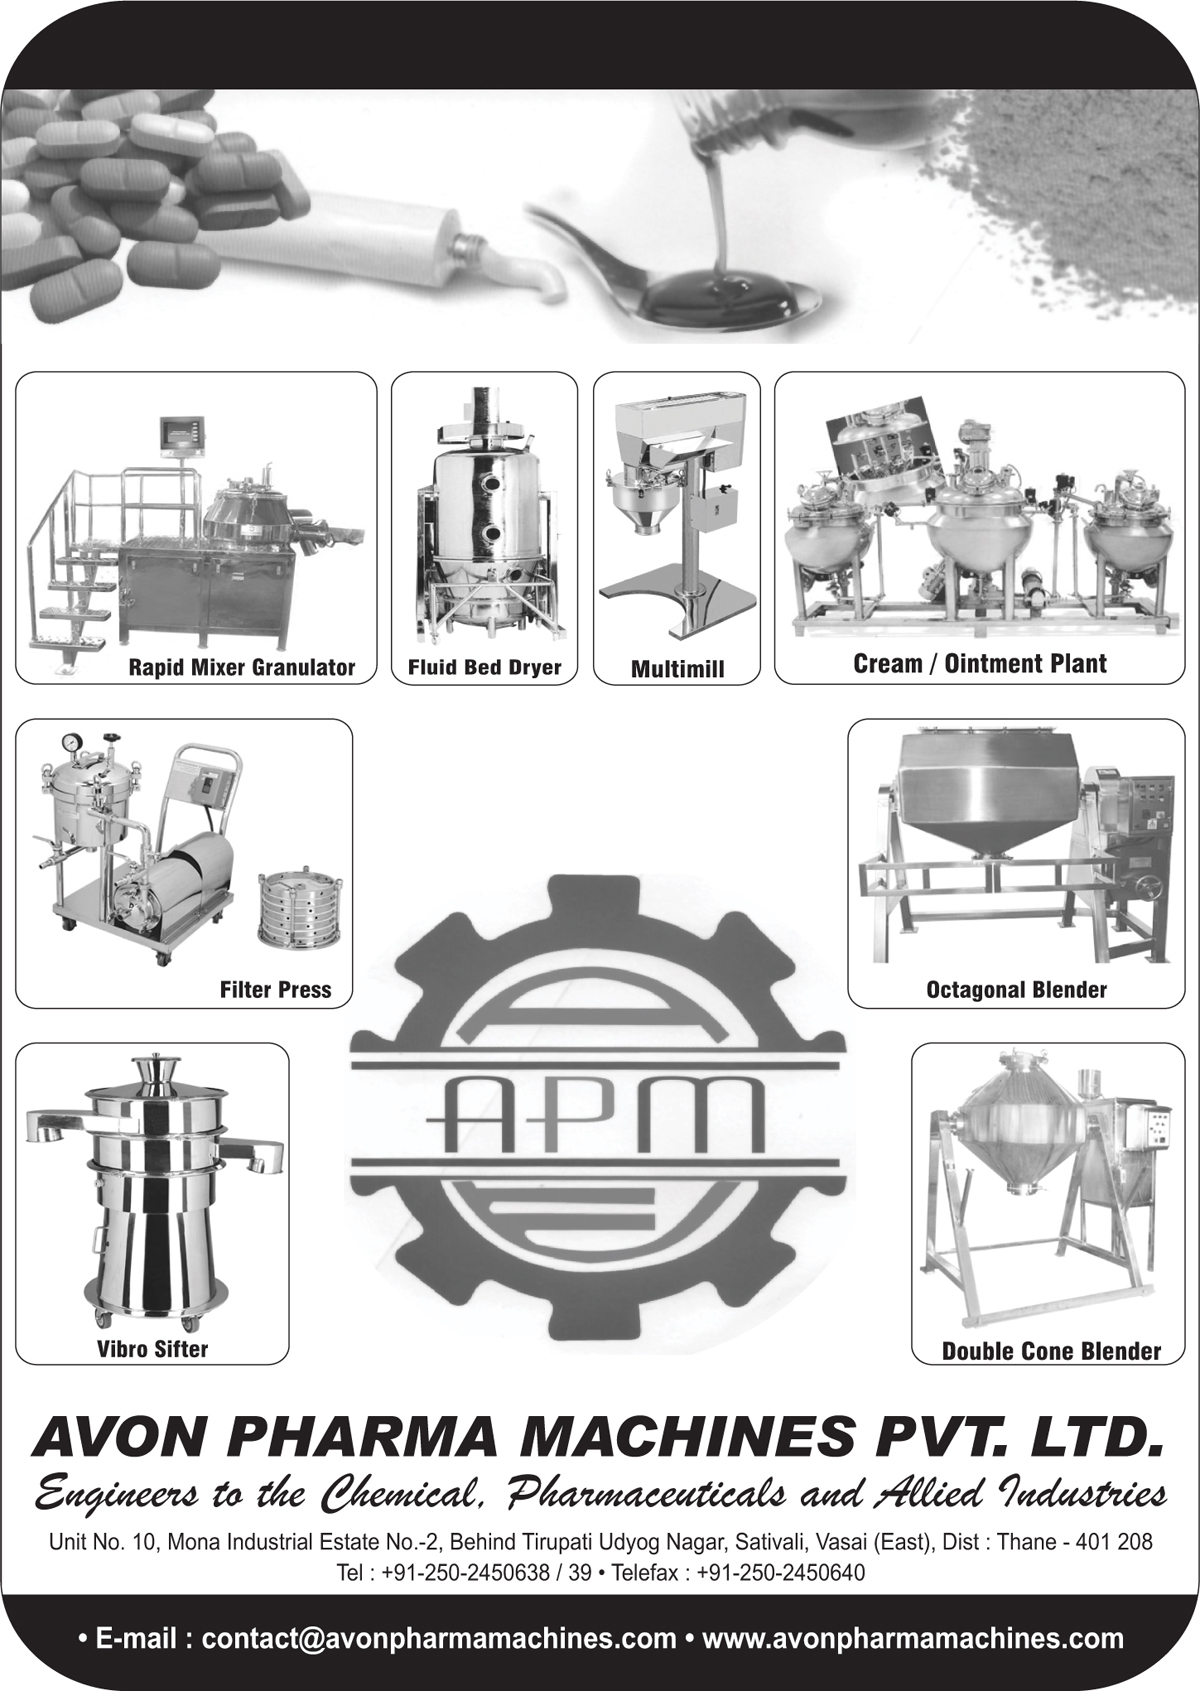 Rapid Mixer Granulators, Fluid Bed Dryers, Multi Mills, Cream Plant, Ointment Plants, Filter Press, Octagonal Blenders, Vibro Sifters, Double Cone Blenders